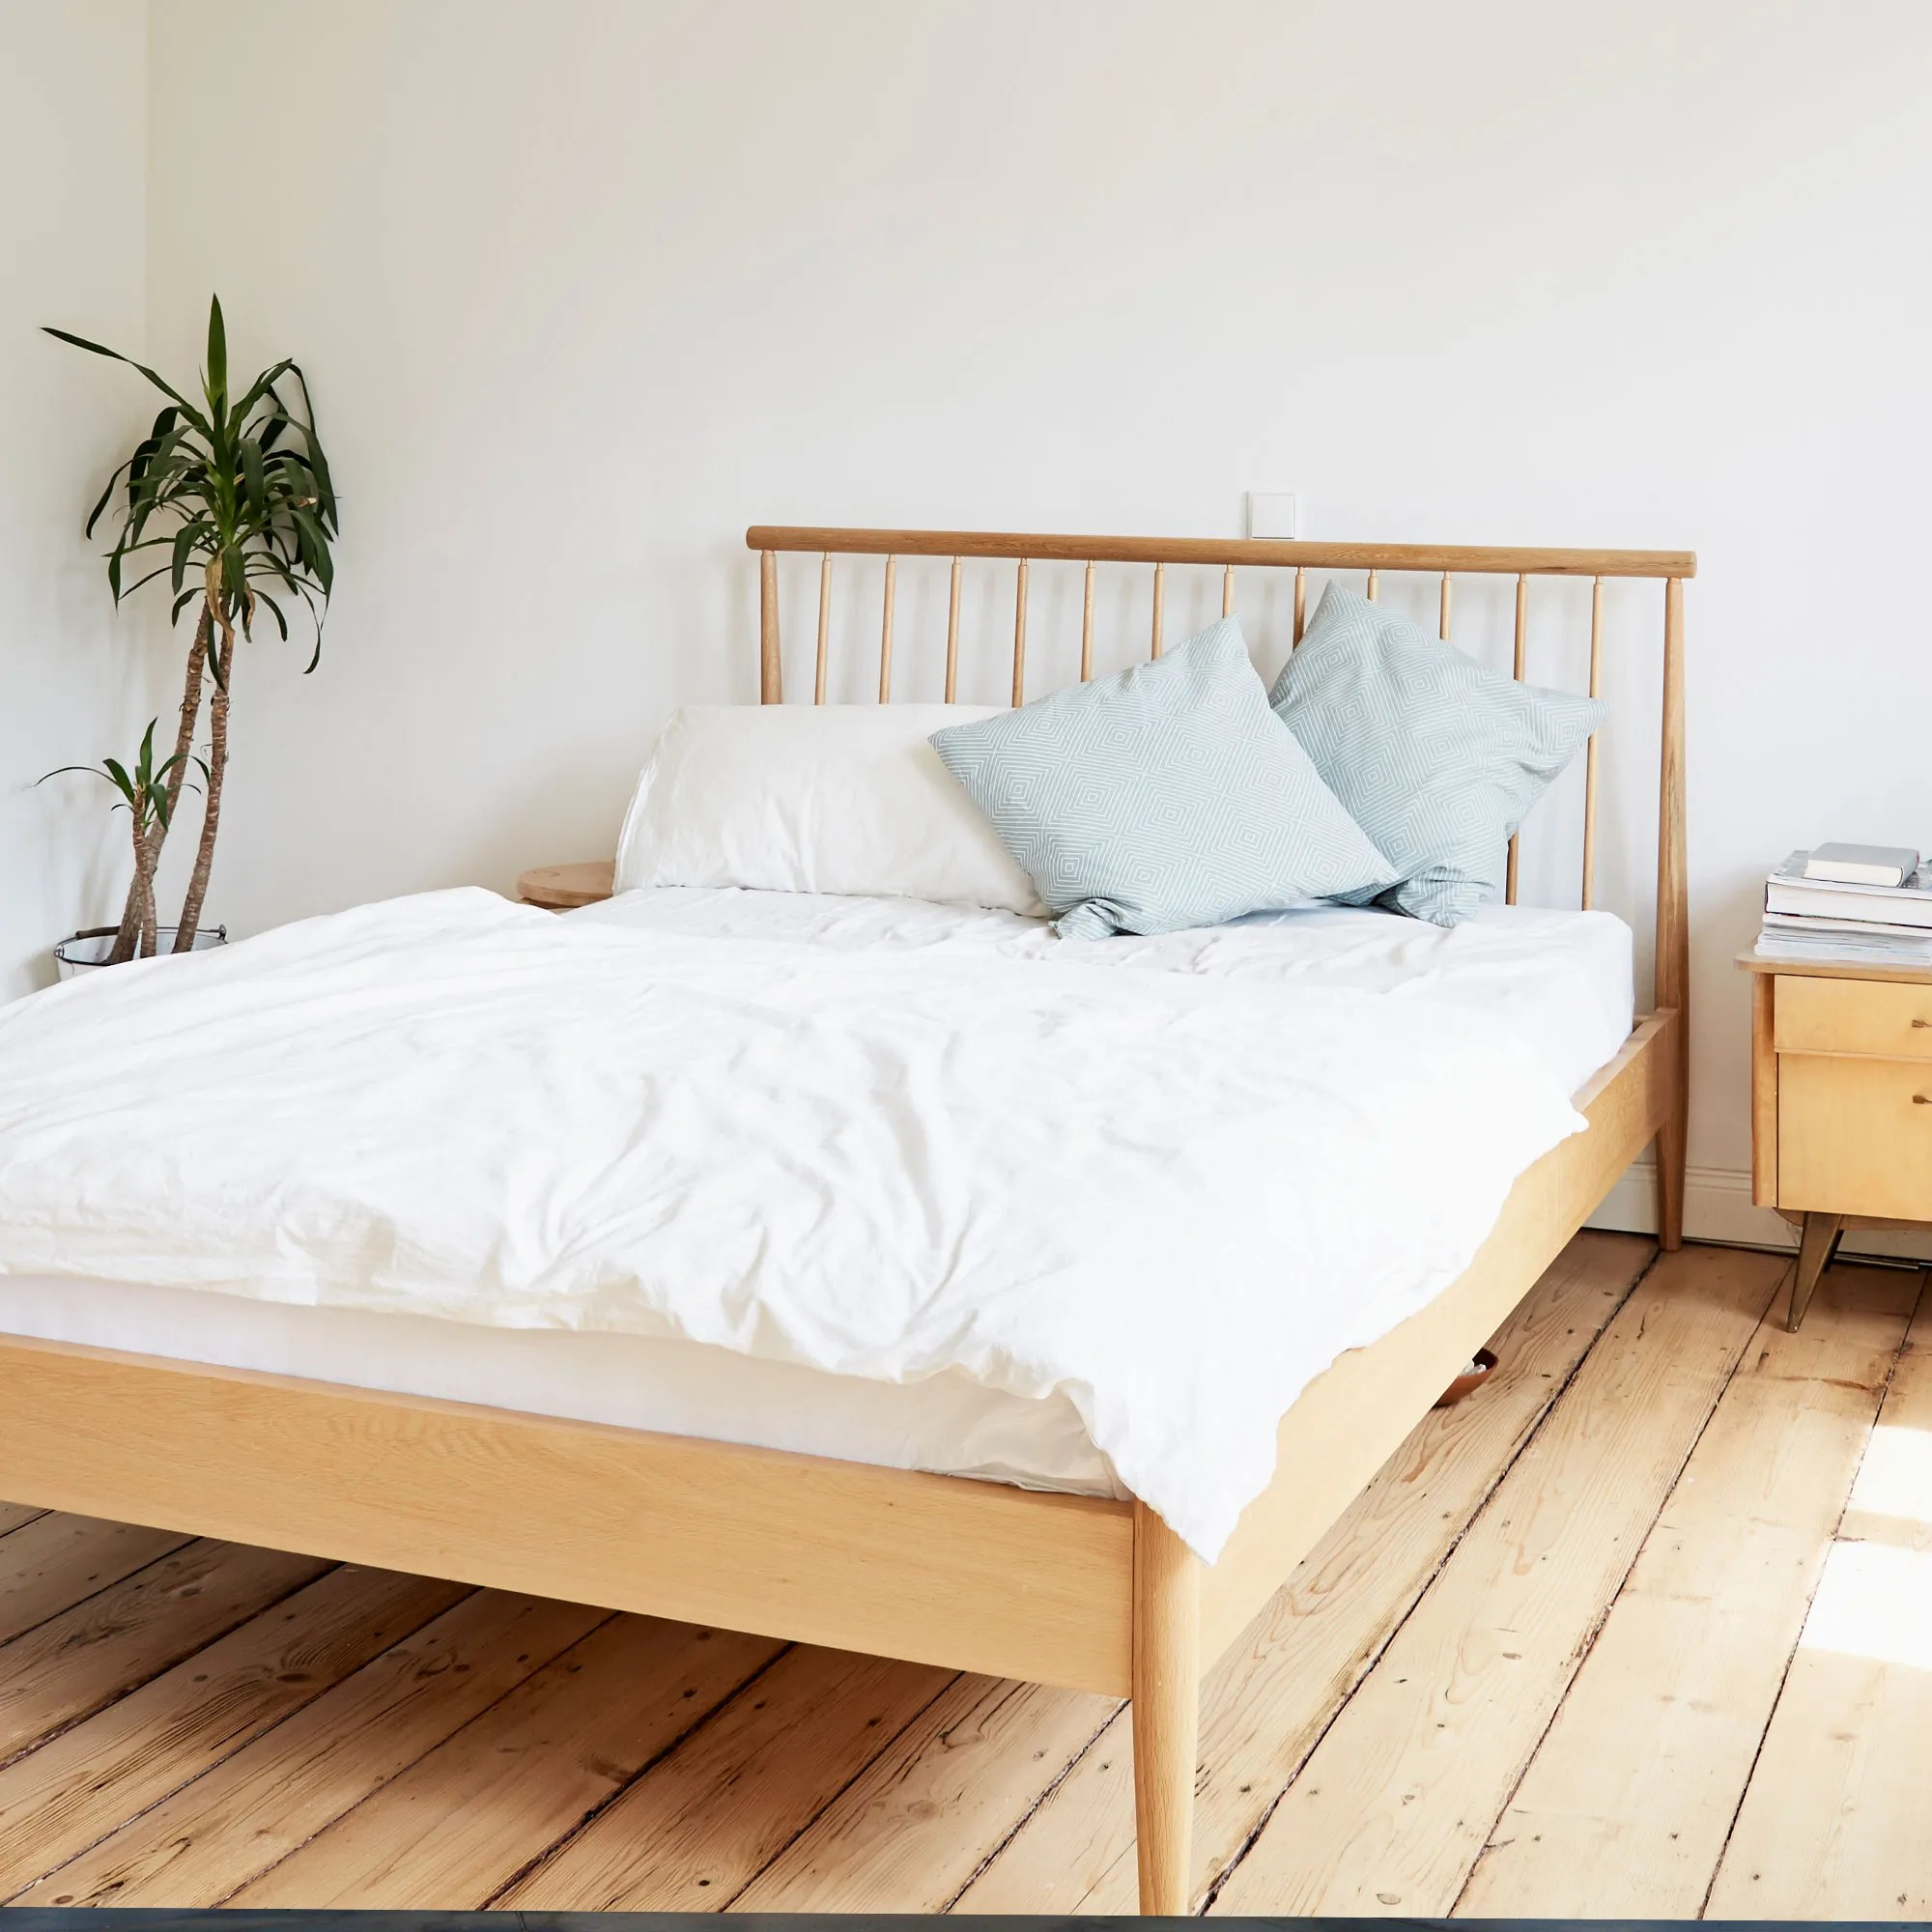 Best Traditional Mattress The 8 Best Mattresses To Buy For Your First Apartment Teen Vogue